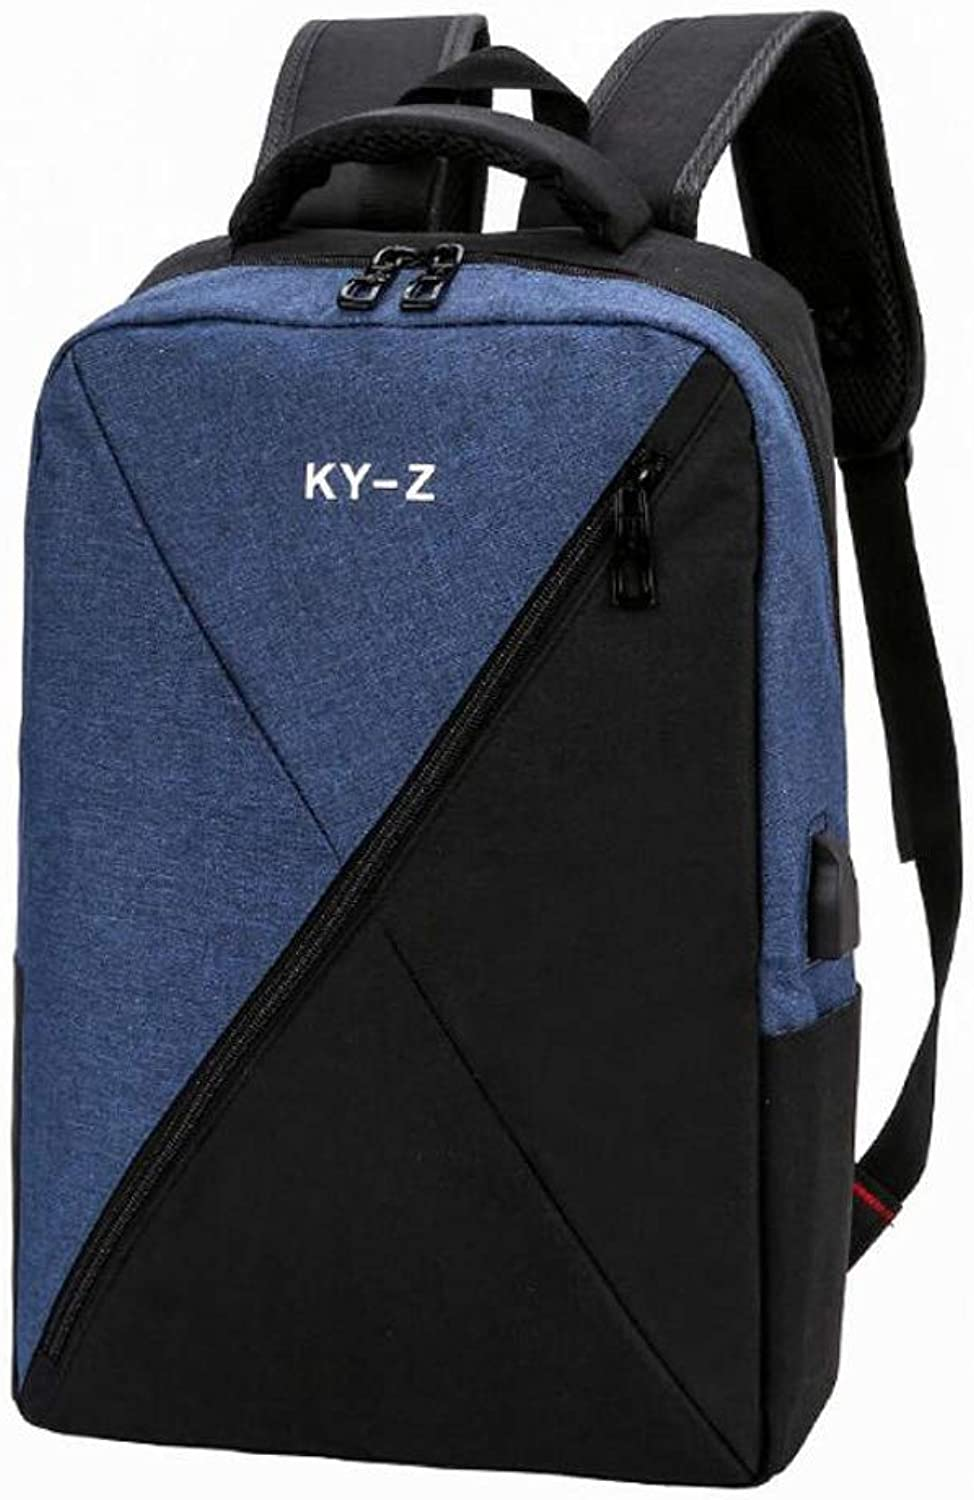 ZJYSM Laptop Backpack, Work Bag for Men and Women, Suitable for 15.6inch Laptop, with shoes Cabinet, External USB Charging Port, Waterproof, 4 colors Optional Backpack